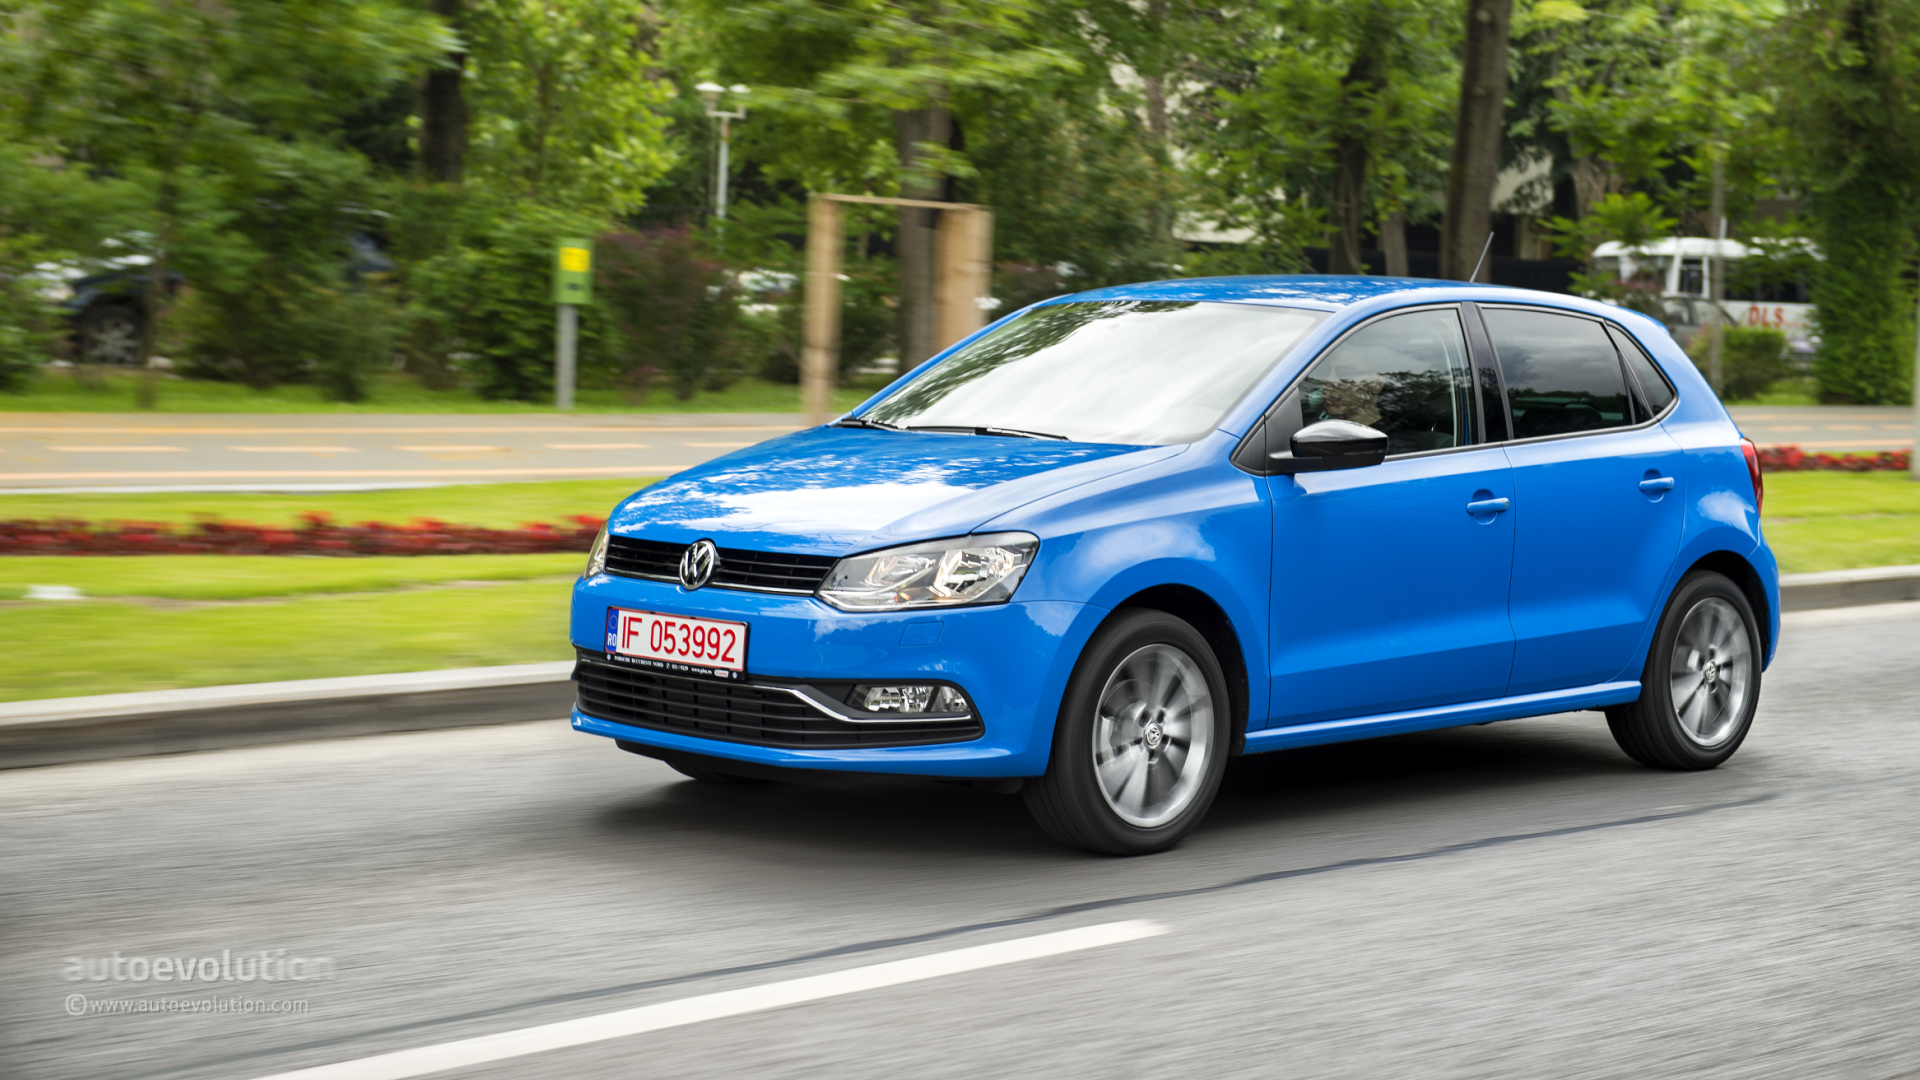 2014 volkswagen polo 1 2 tsi first drive. Black Bedroom Furniture Sets. Home Design Ideas